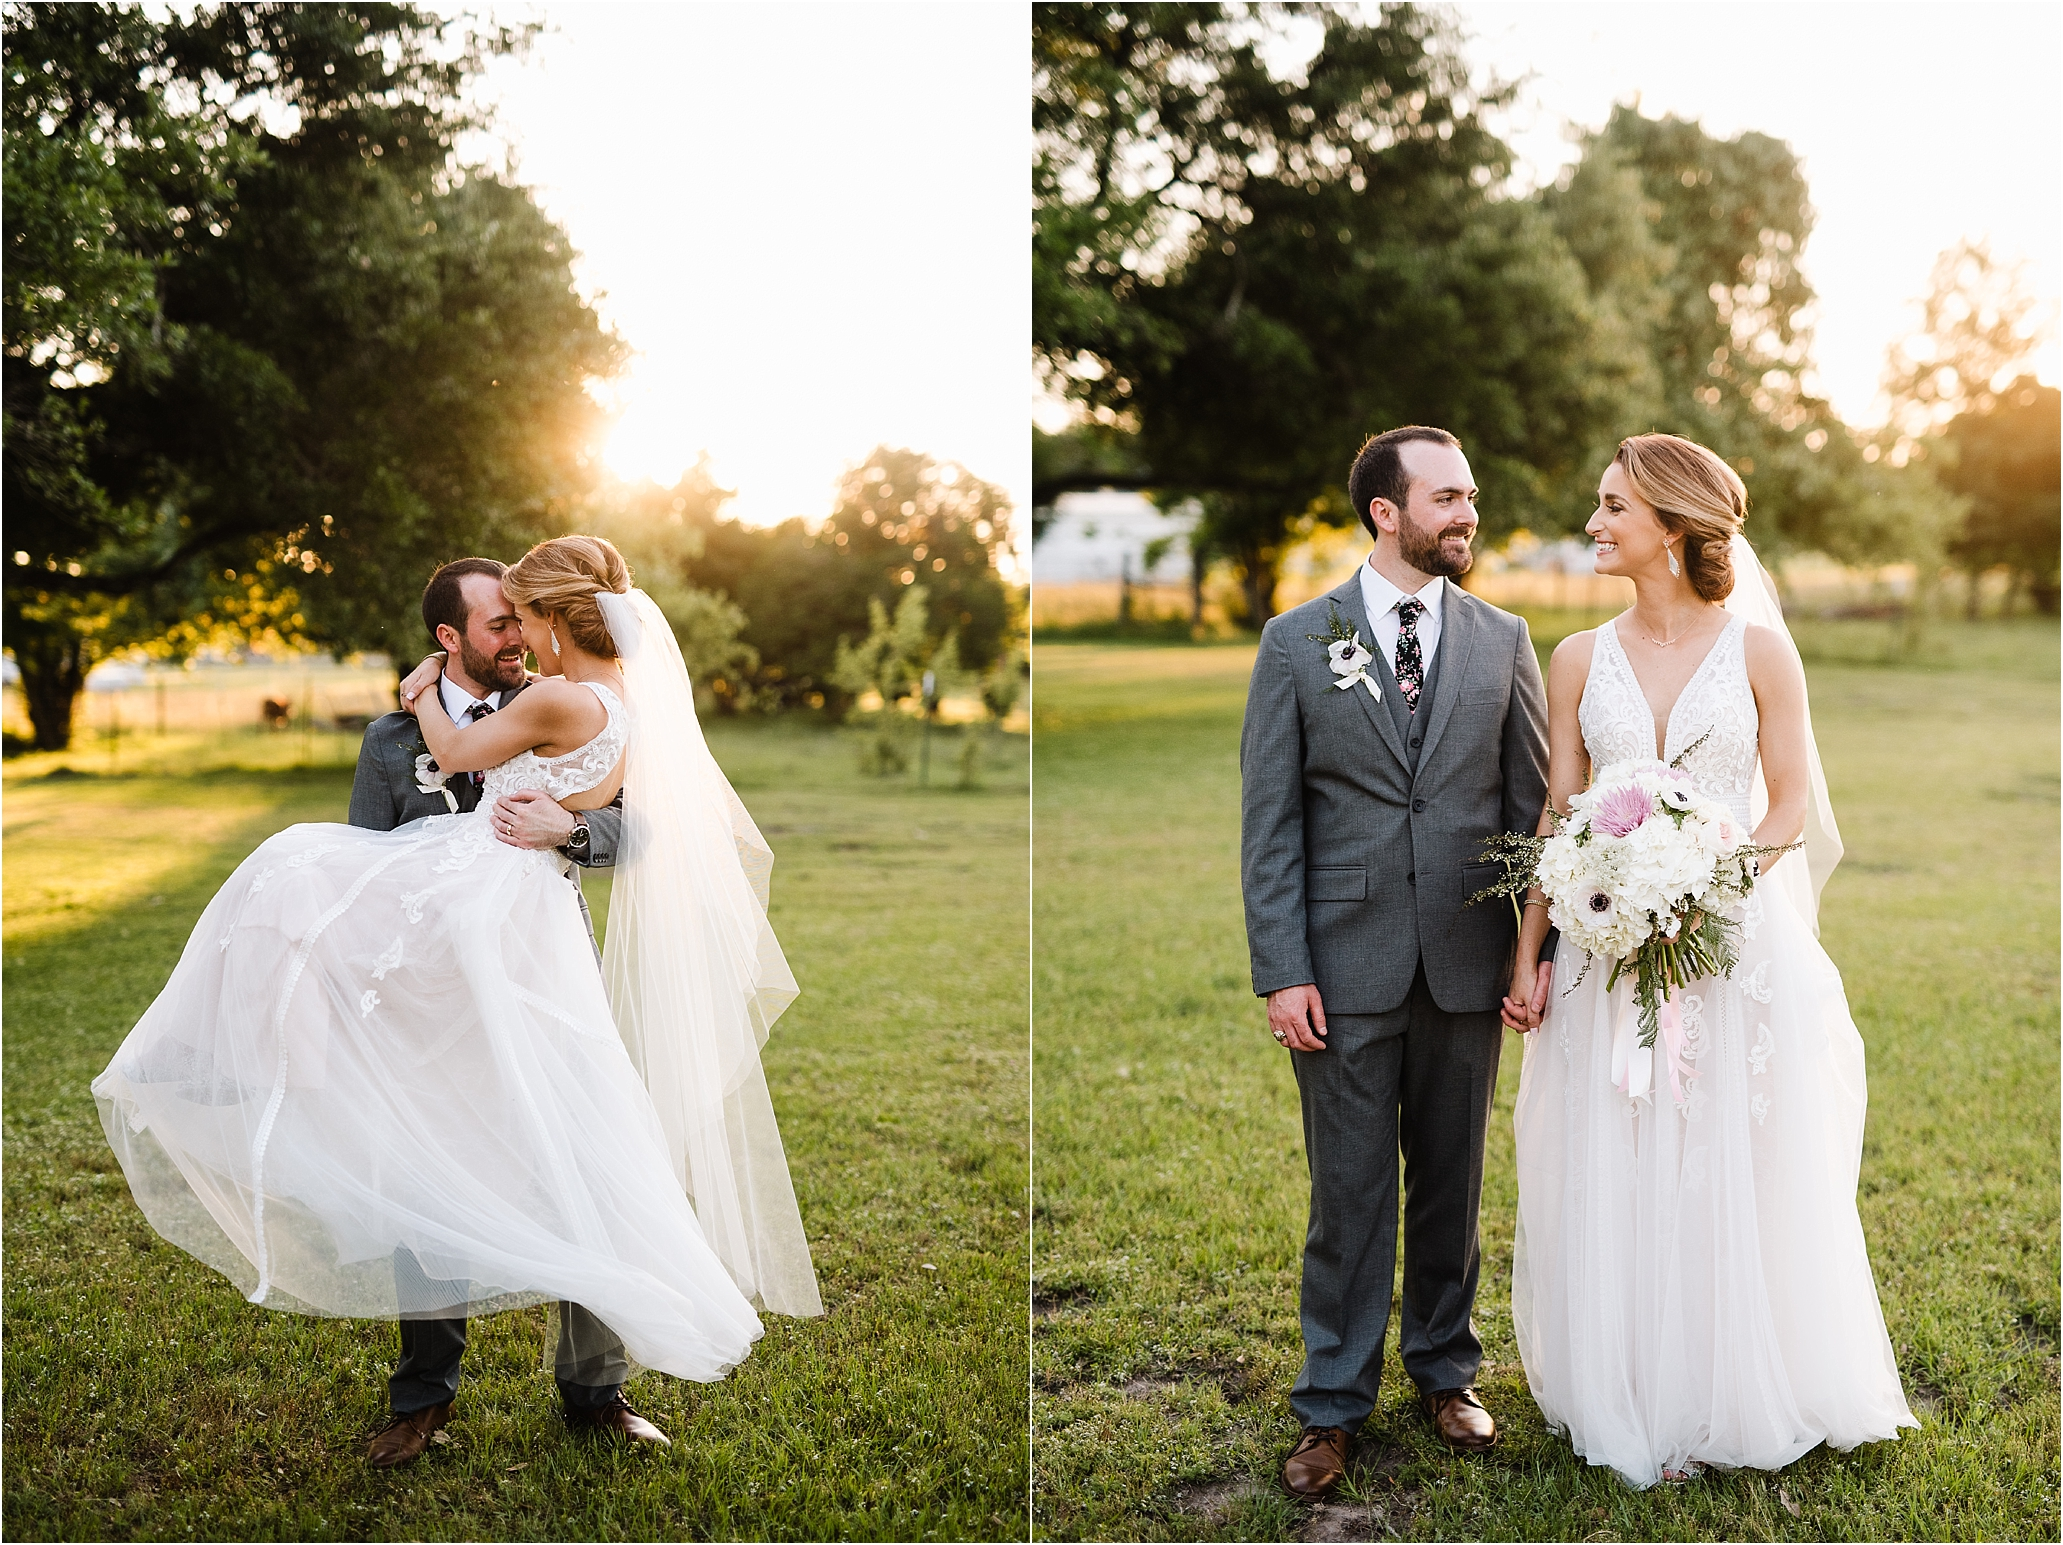 PattisonHouse_TexasWeddingPhotographer_CarlyCrockett&MattBrownWedding_0077.jpg